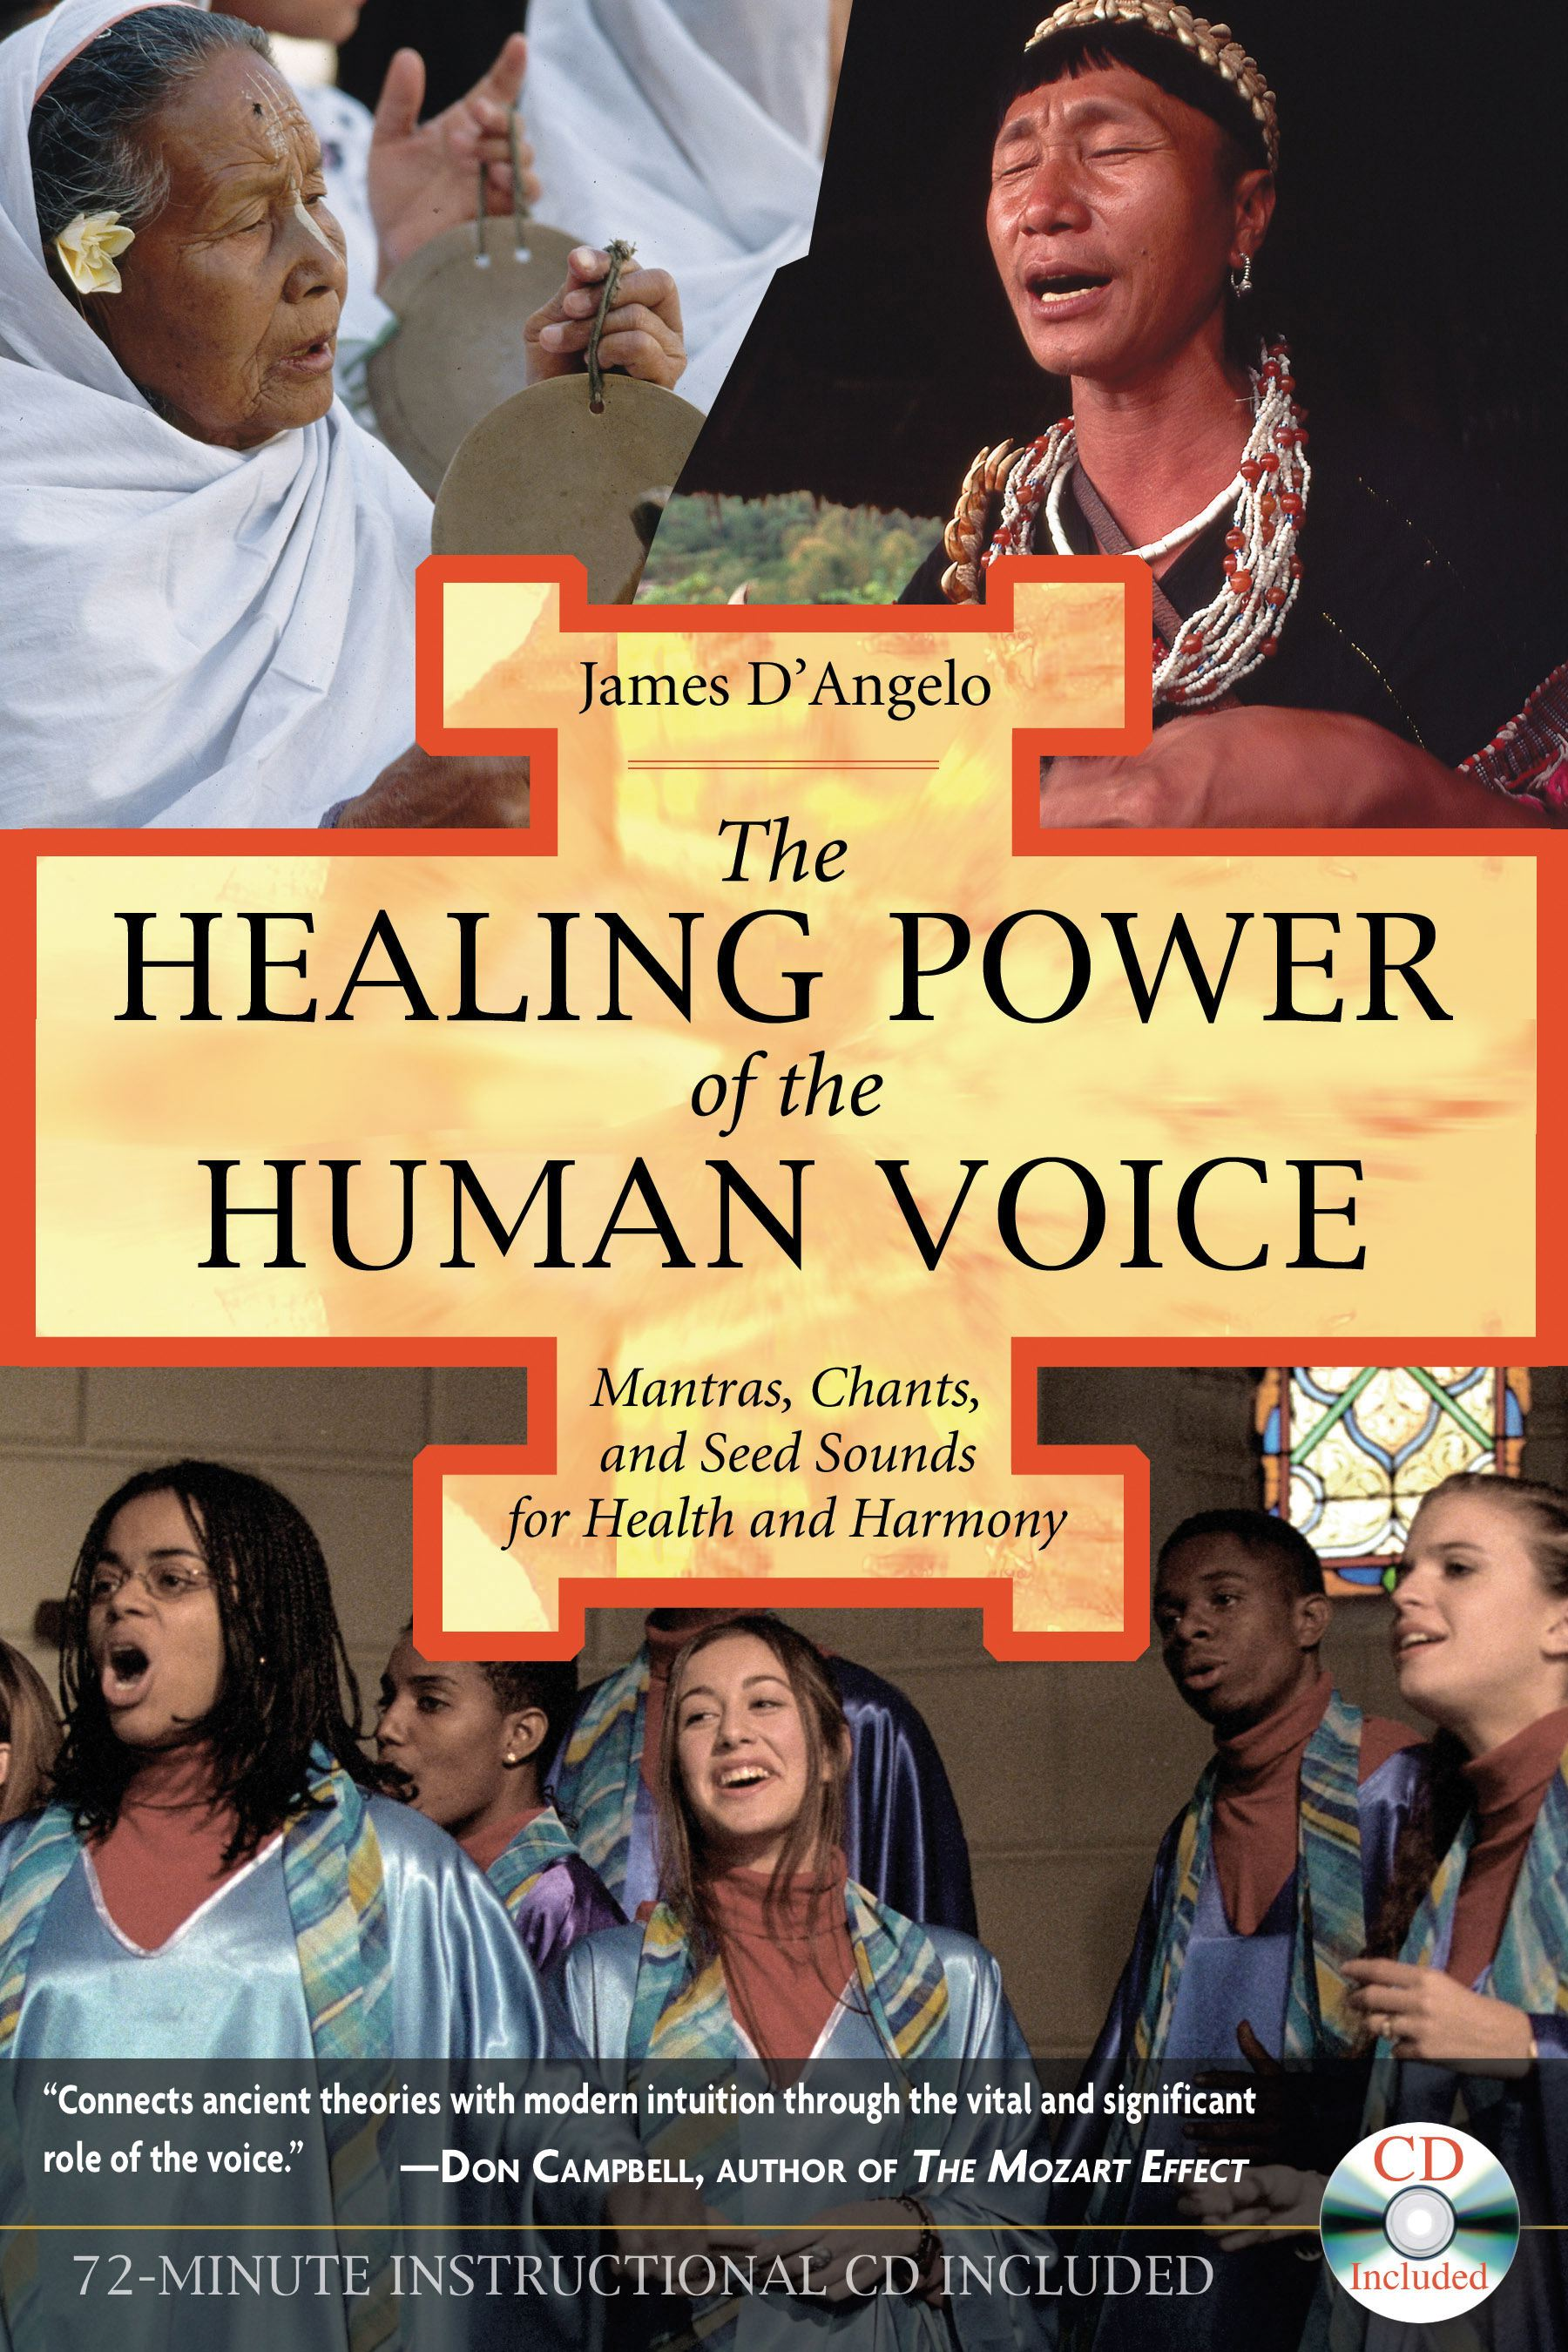 The healing power of the human voice 9781594770500 hr